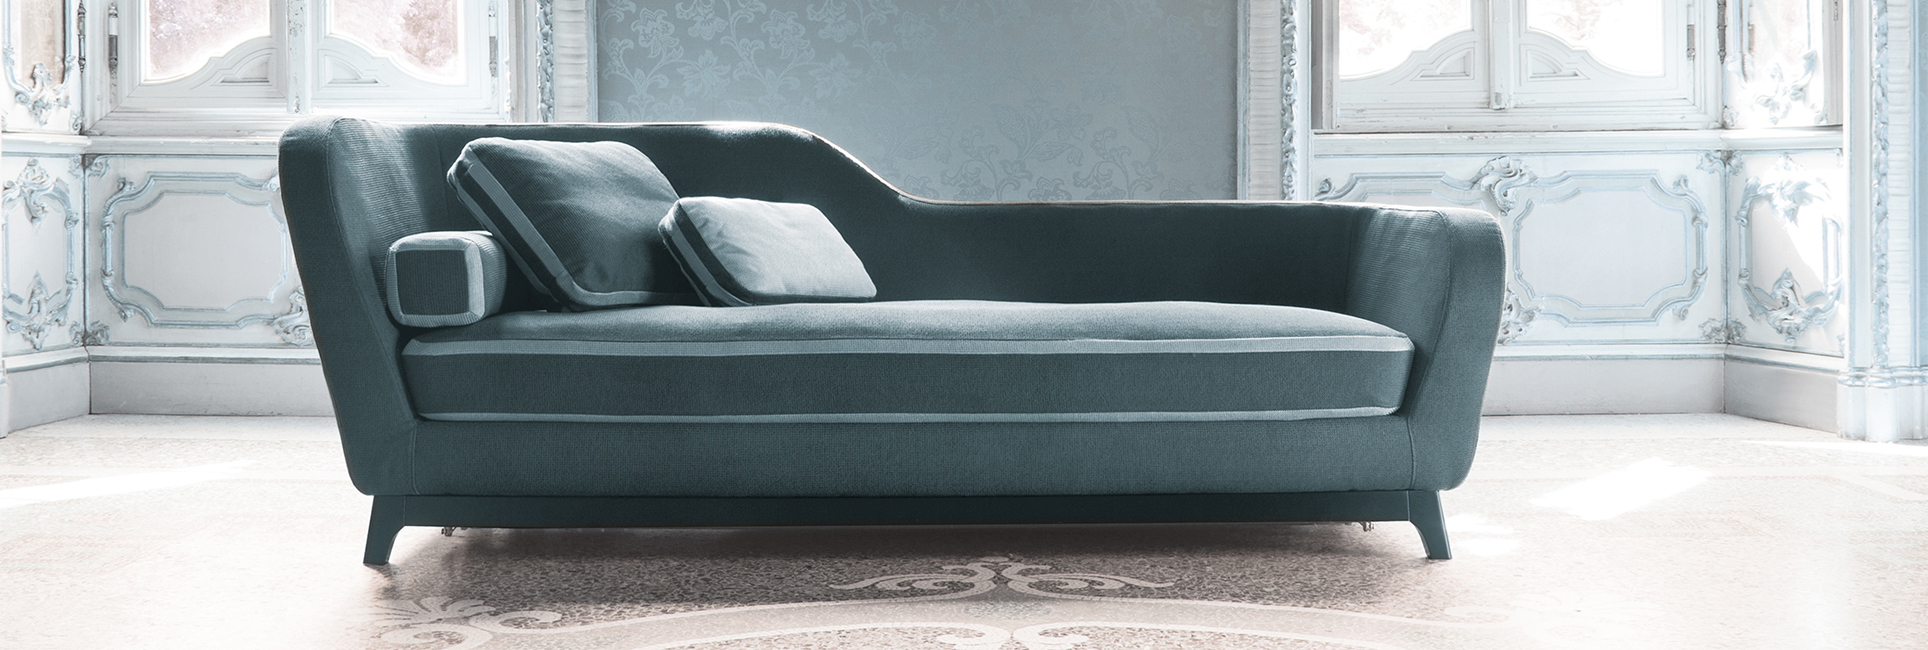 Jeremie dormeuse sofa bed